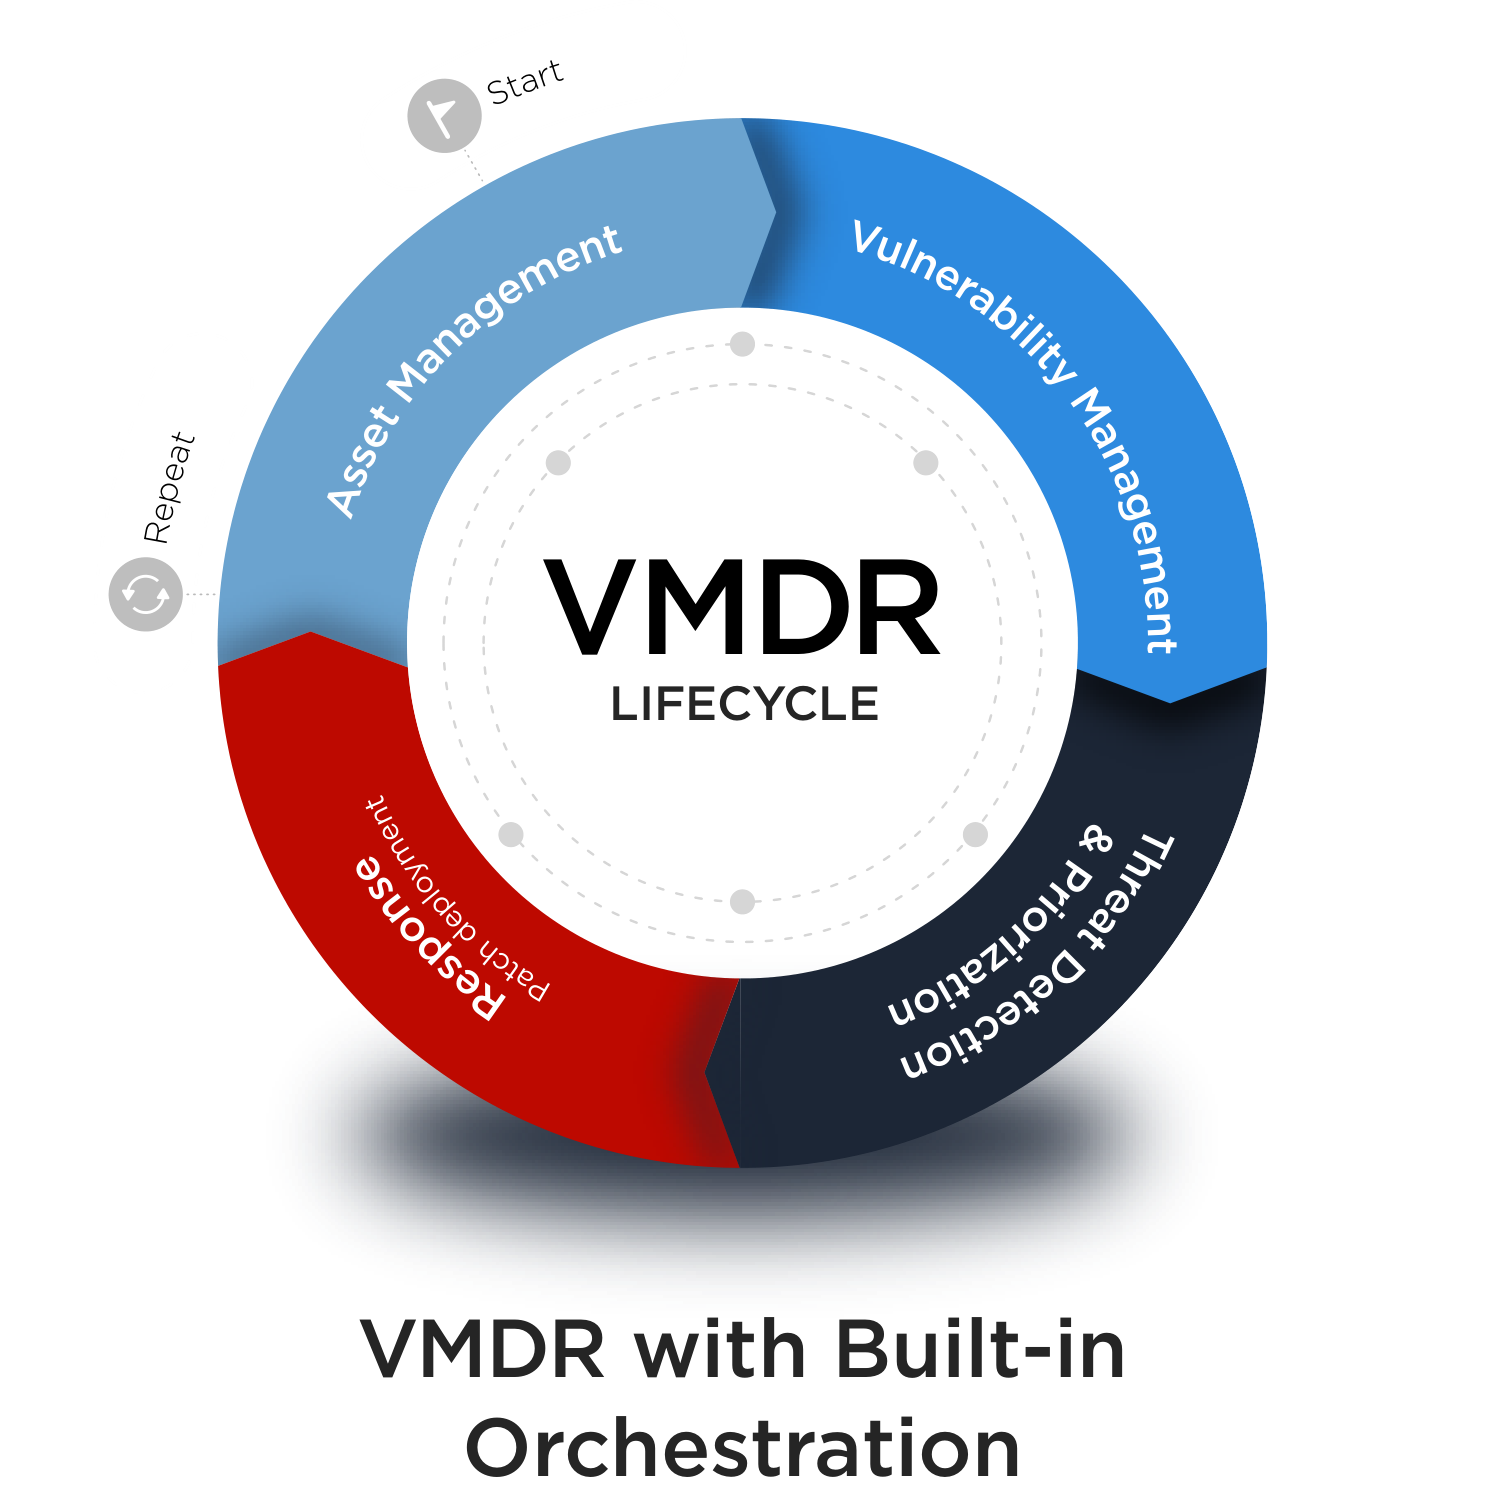 VMDR Lifecycle